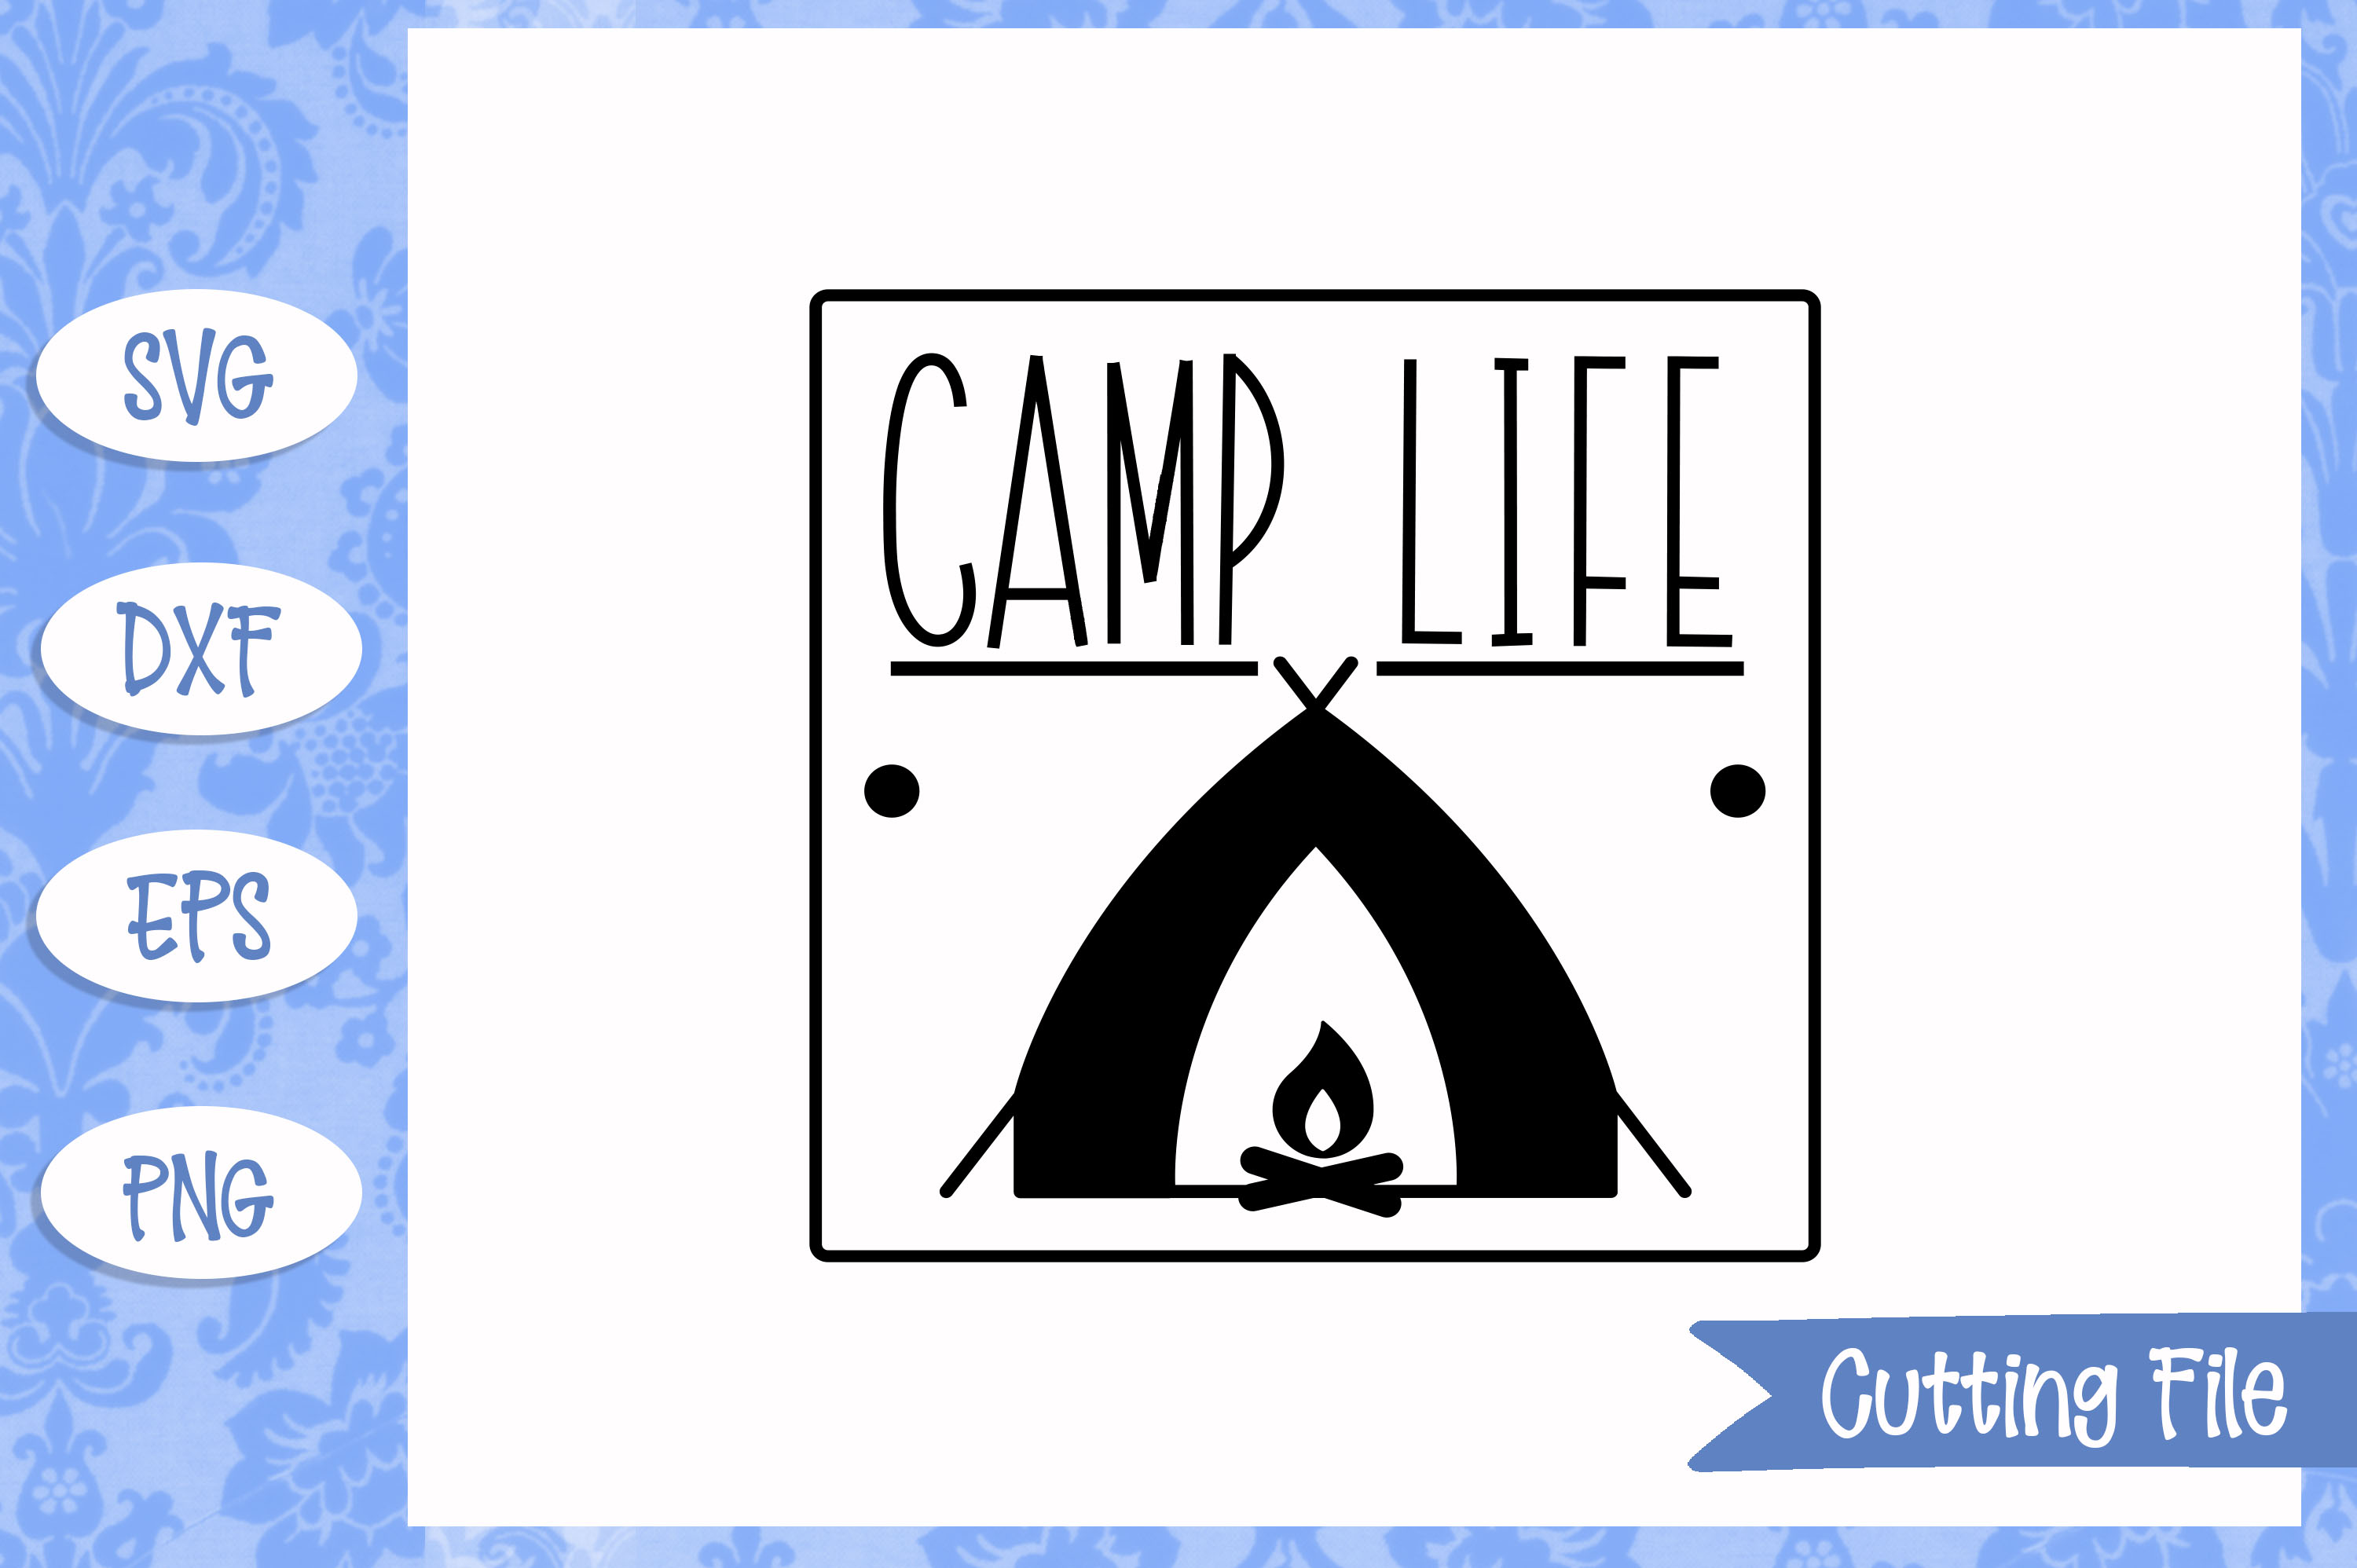 Camp life SVG File example image 1